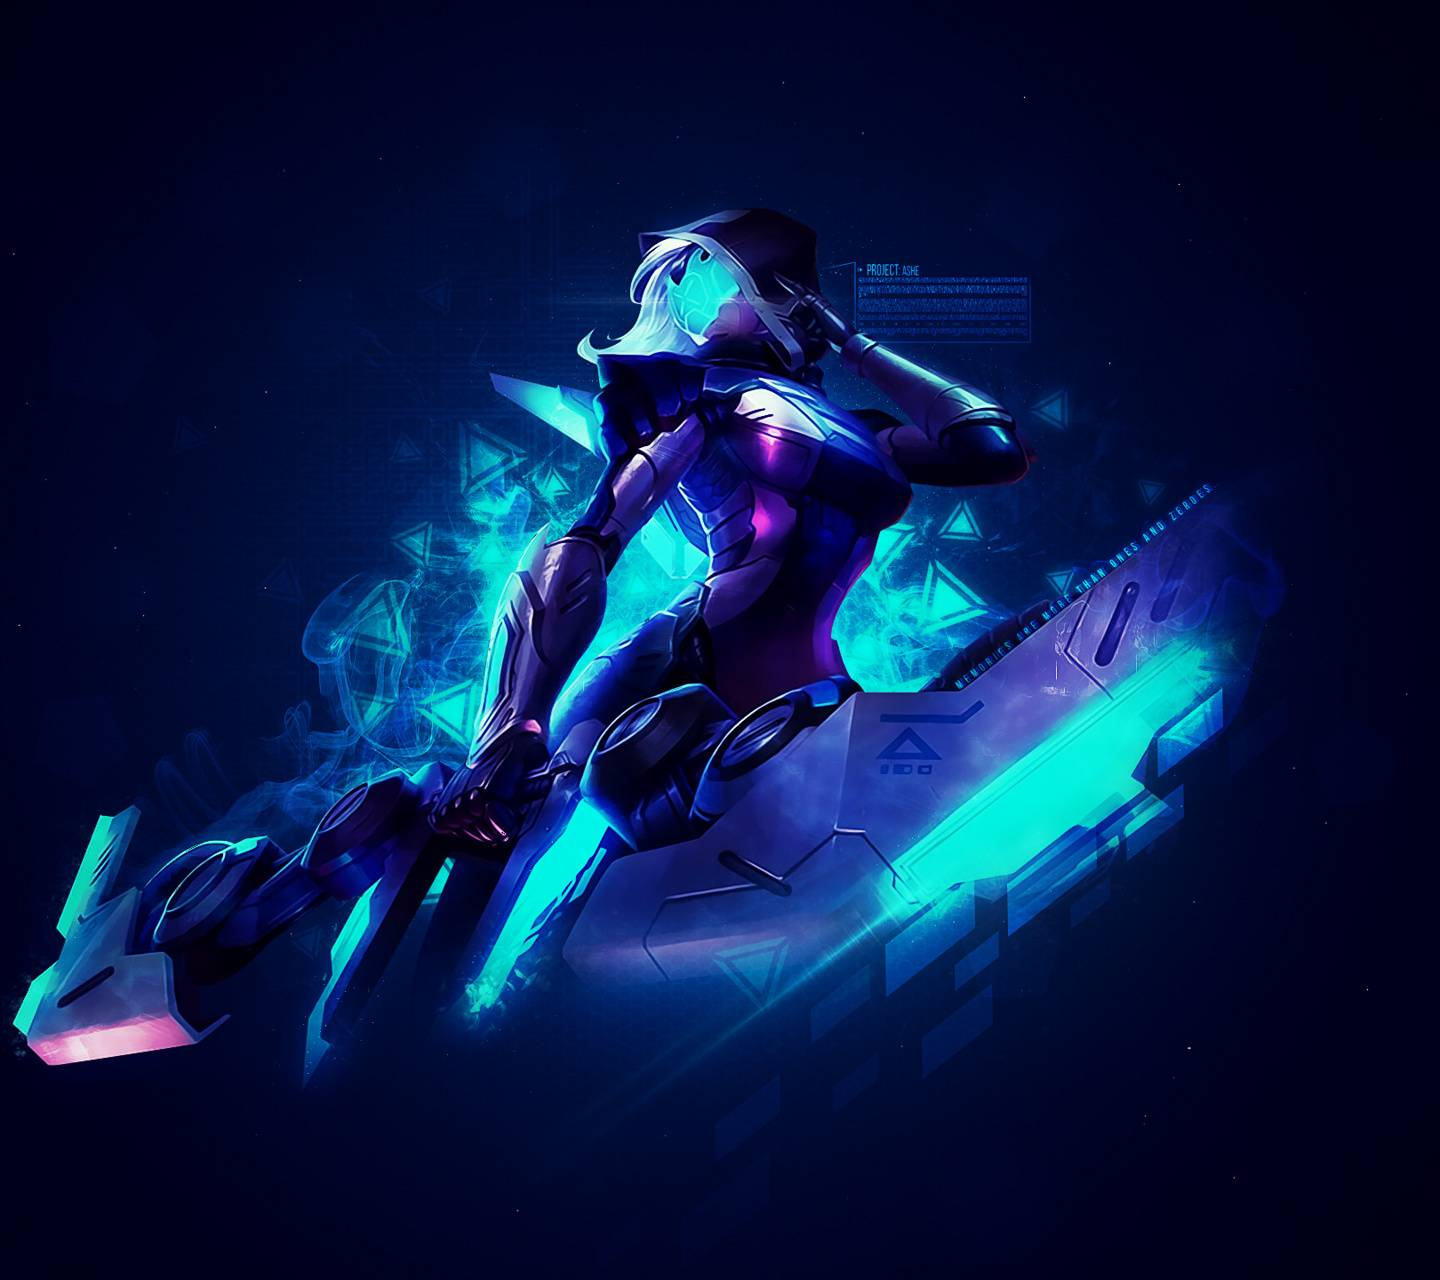 P R O J E C T Ashe Wallpaper By Krowely 4e Free On Zedge